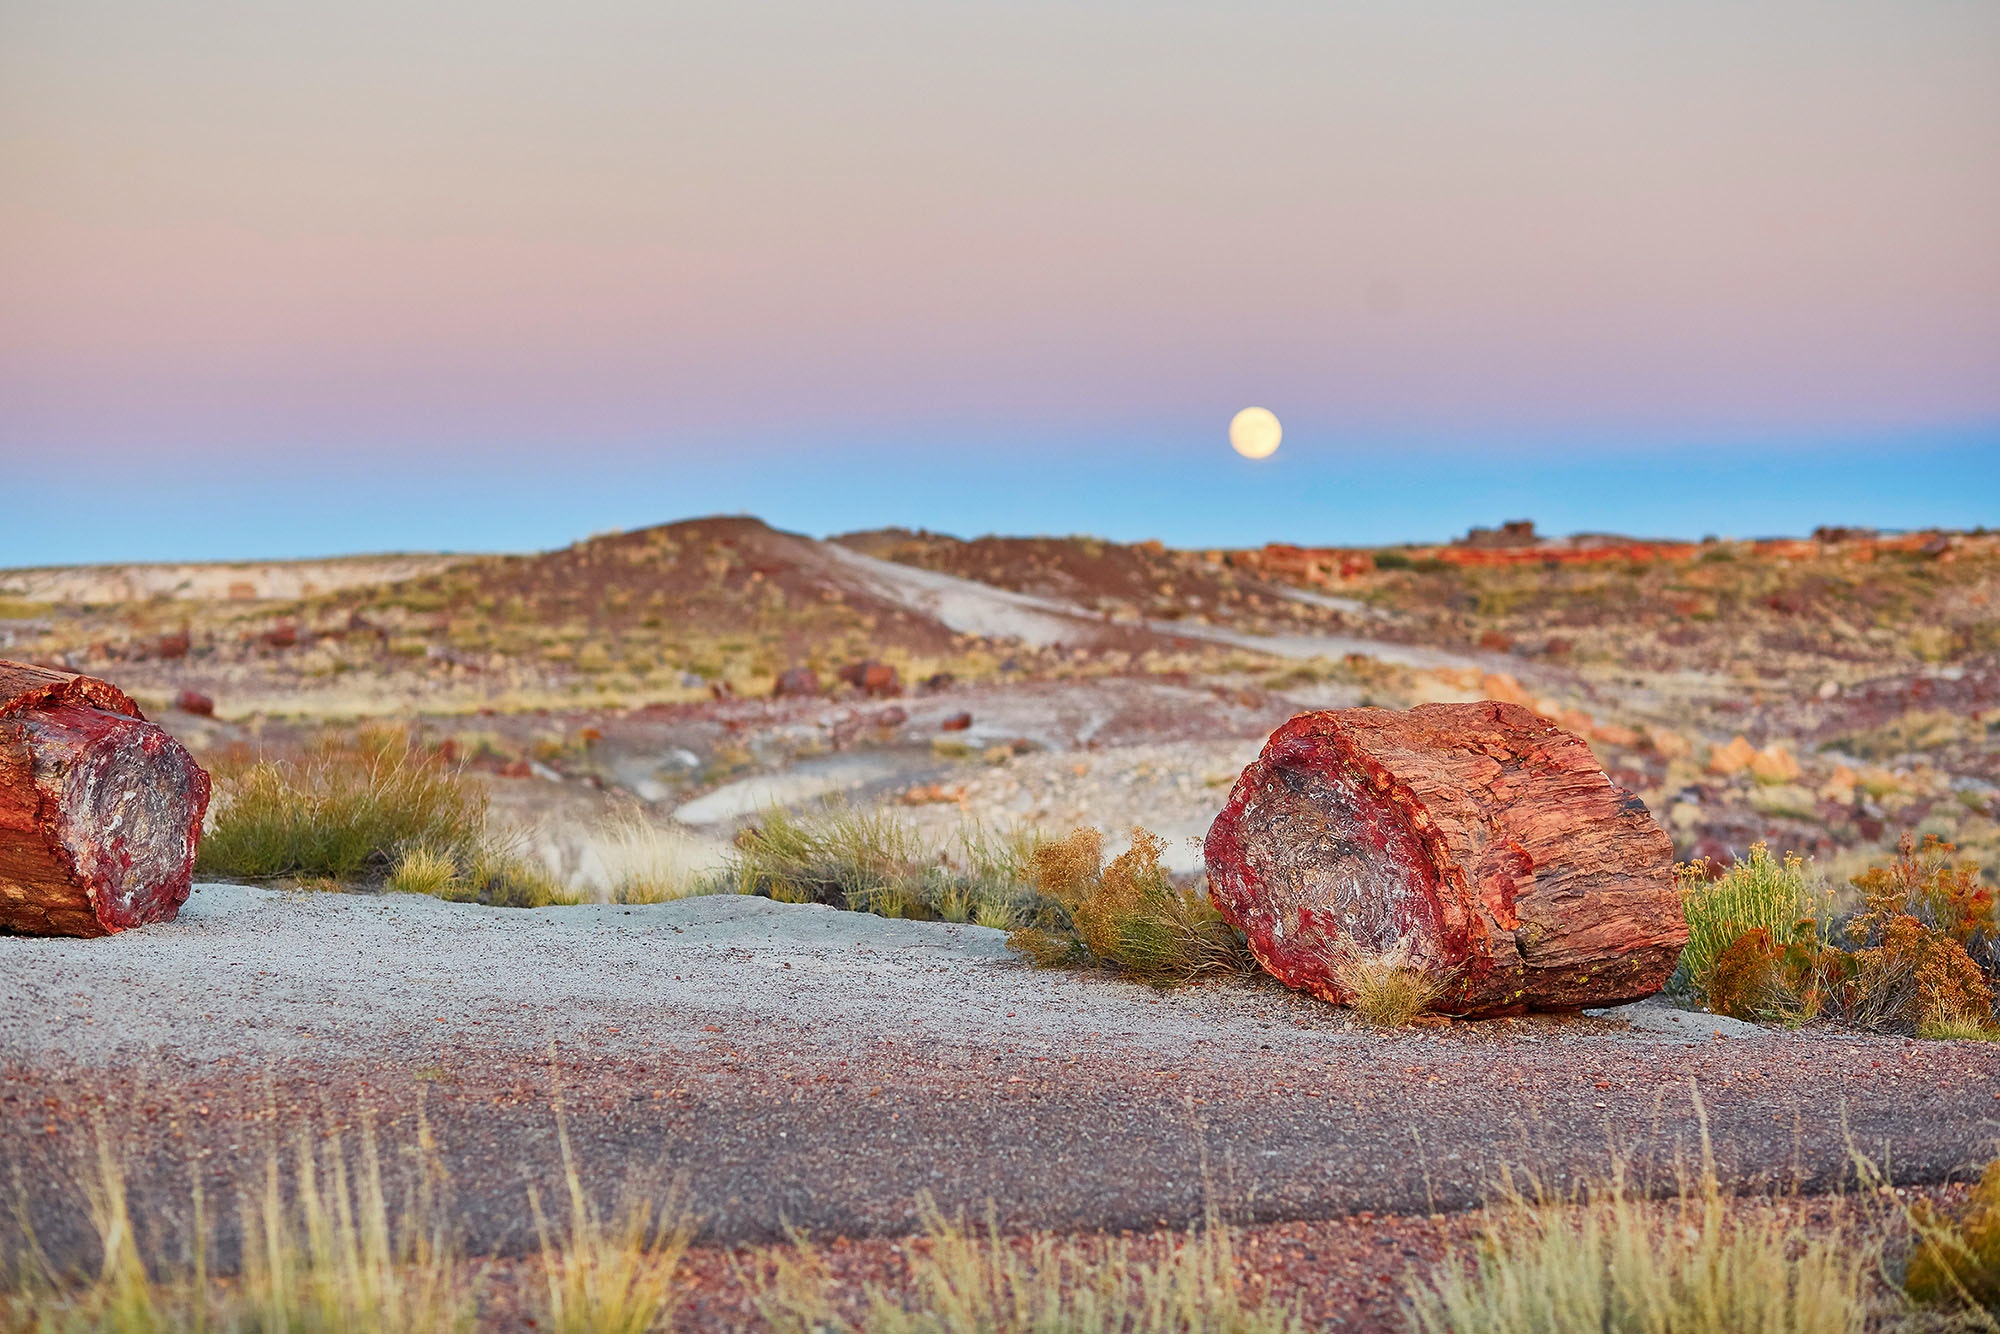 At Petrified Forest National Park, the slow process of fossilization transformed ancient trees into solid quartz.